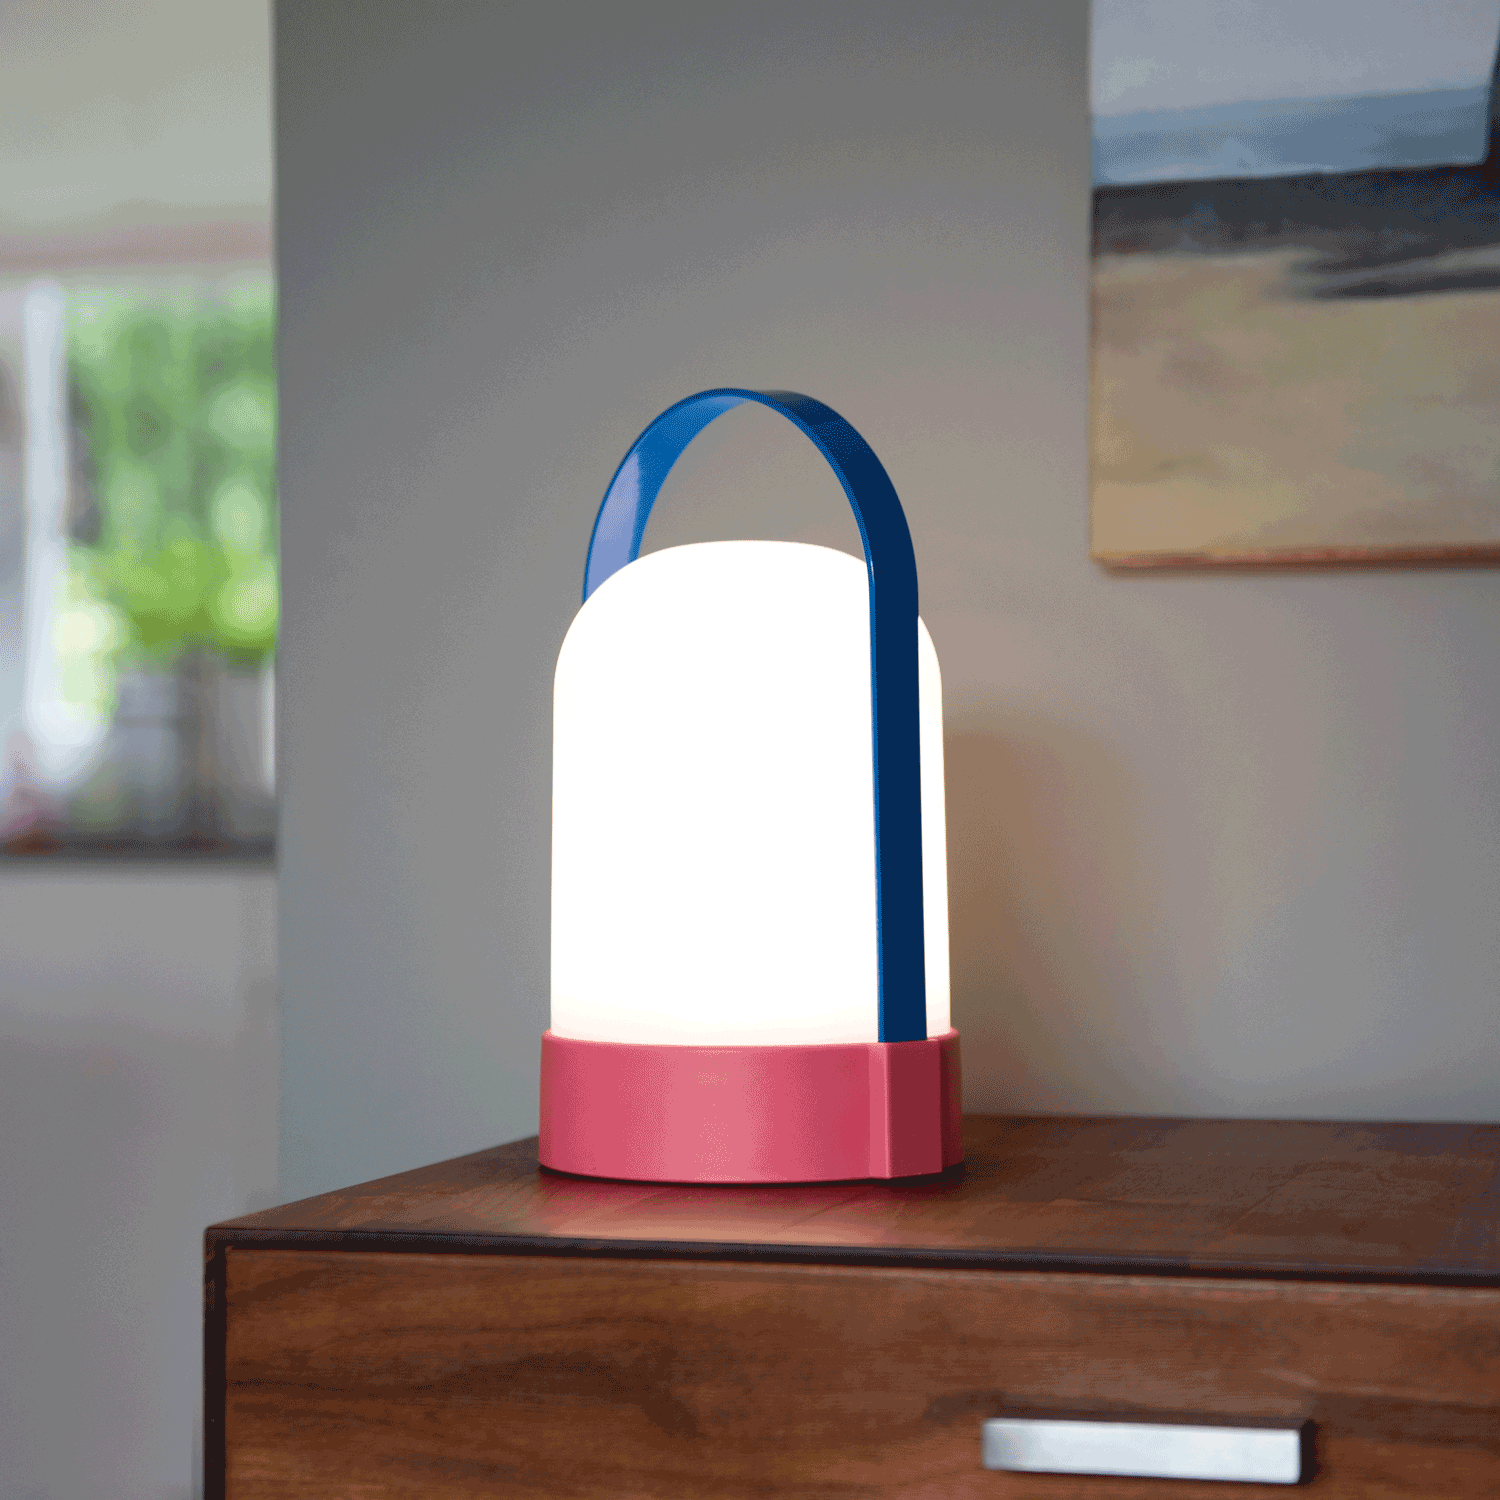 URI LED-lamp Met Handvat - Roze/blauw - Remember